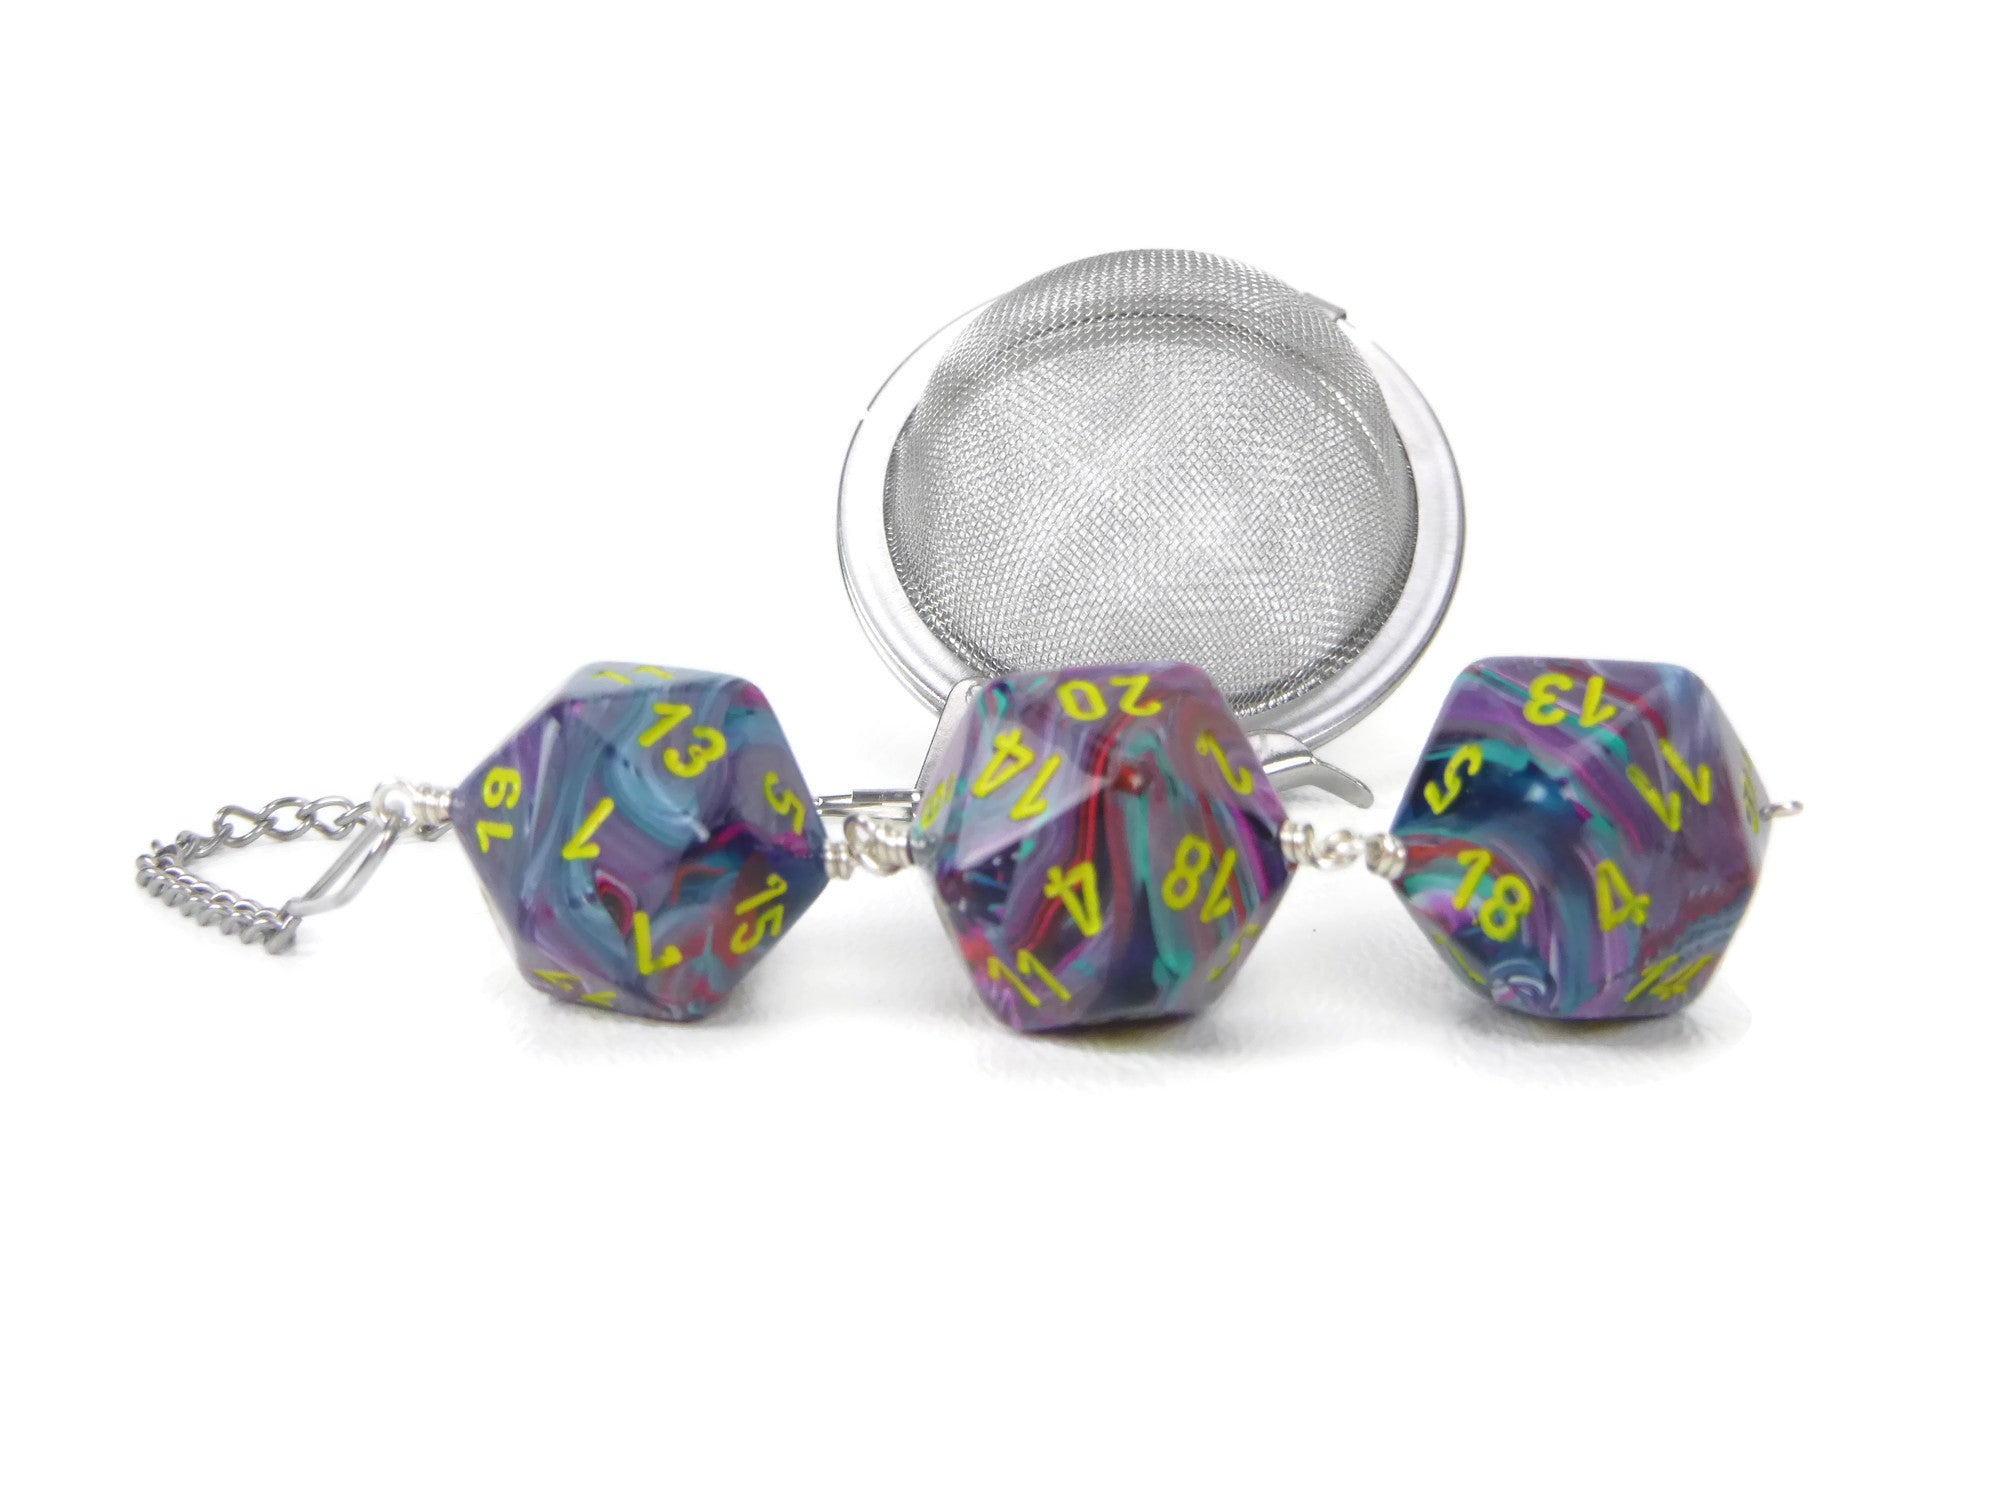 Tea Infuser with Tie-dye dice trio